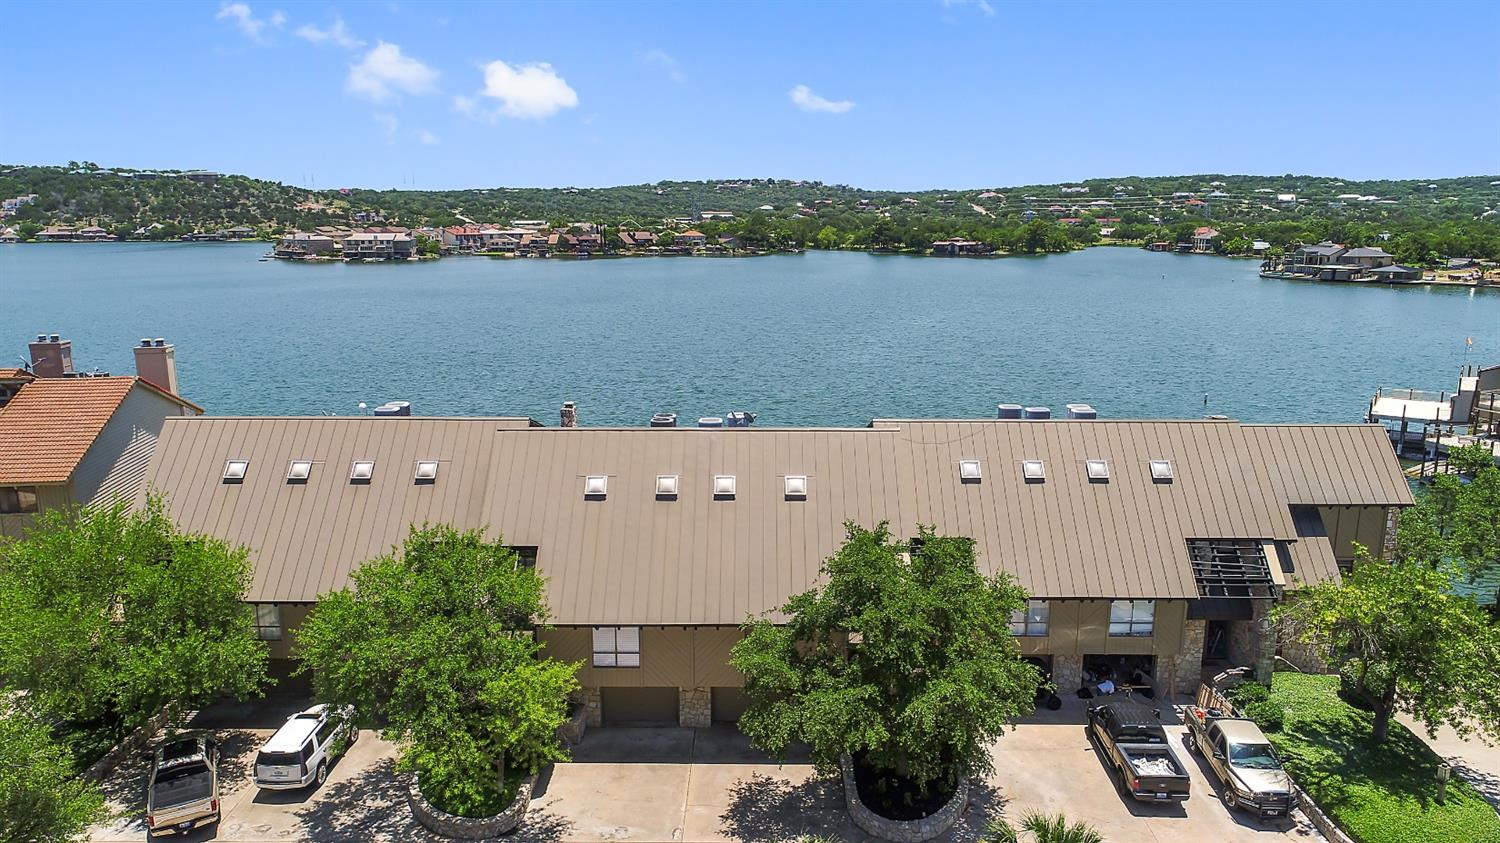 Open water updated townhome in the heart of Horseshoe Bay. Located within walking distance to the Yacht Club and the resort tower. With 4 bedrooms and 4 full bathrooms this townhome is about 2,506 square feet. Every floor of this unit has outdoor space, so you can enjoy the lake from every level! The property has sweeping open water views from nearly every room! The lower deck allows you to jump right into the lake or spend your time fishing. Hydraulic boat lift already installed as well as a jet ski lift. You won't want to miss out on this one! 301 Island Drive Unit B